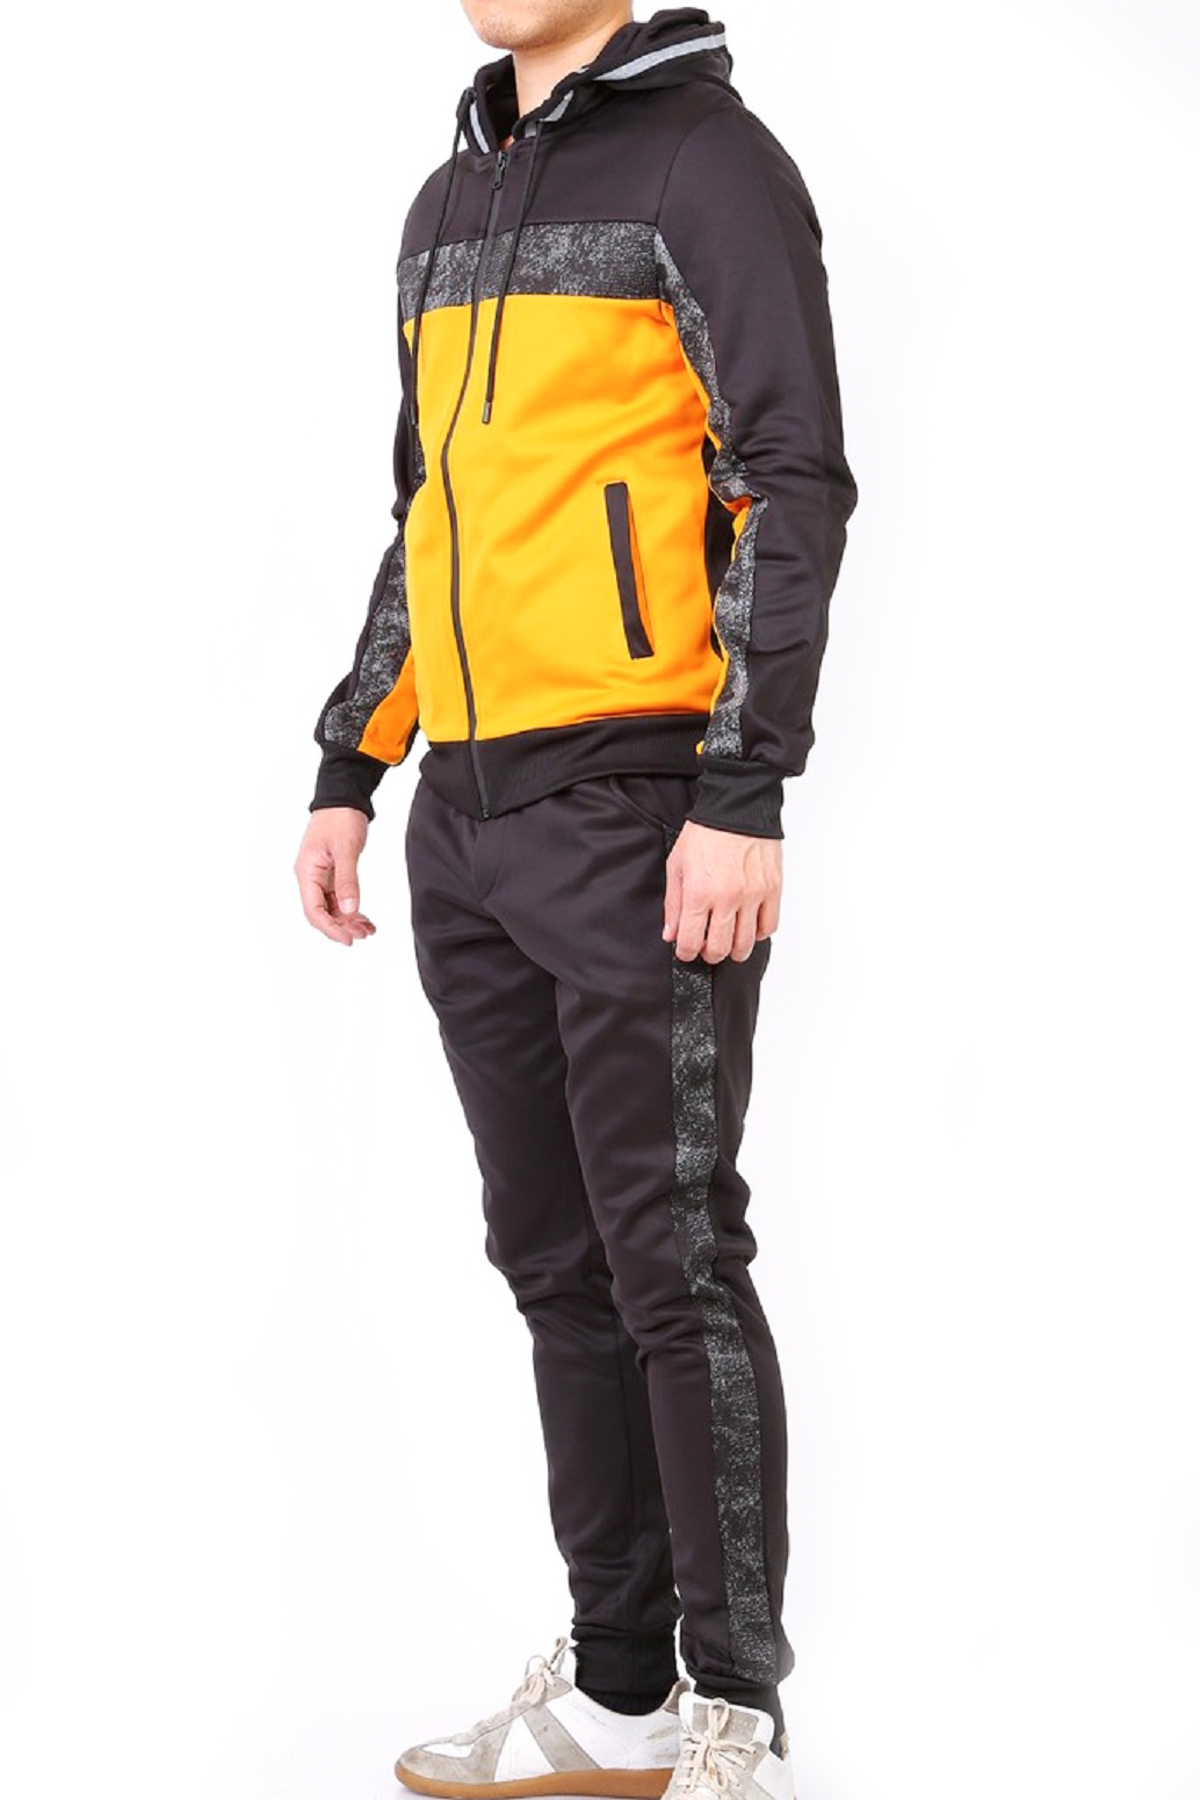 Ensembles Homme Noir/jaune KAYENNE DL110AB #c eFashion Paris